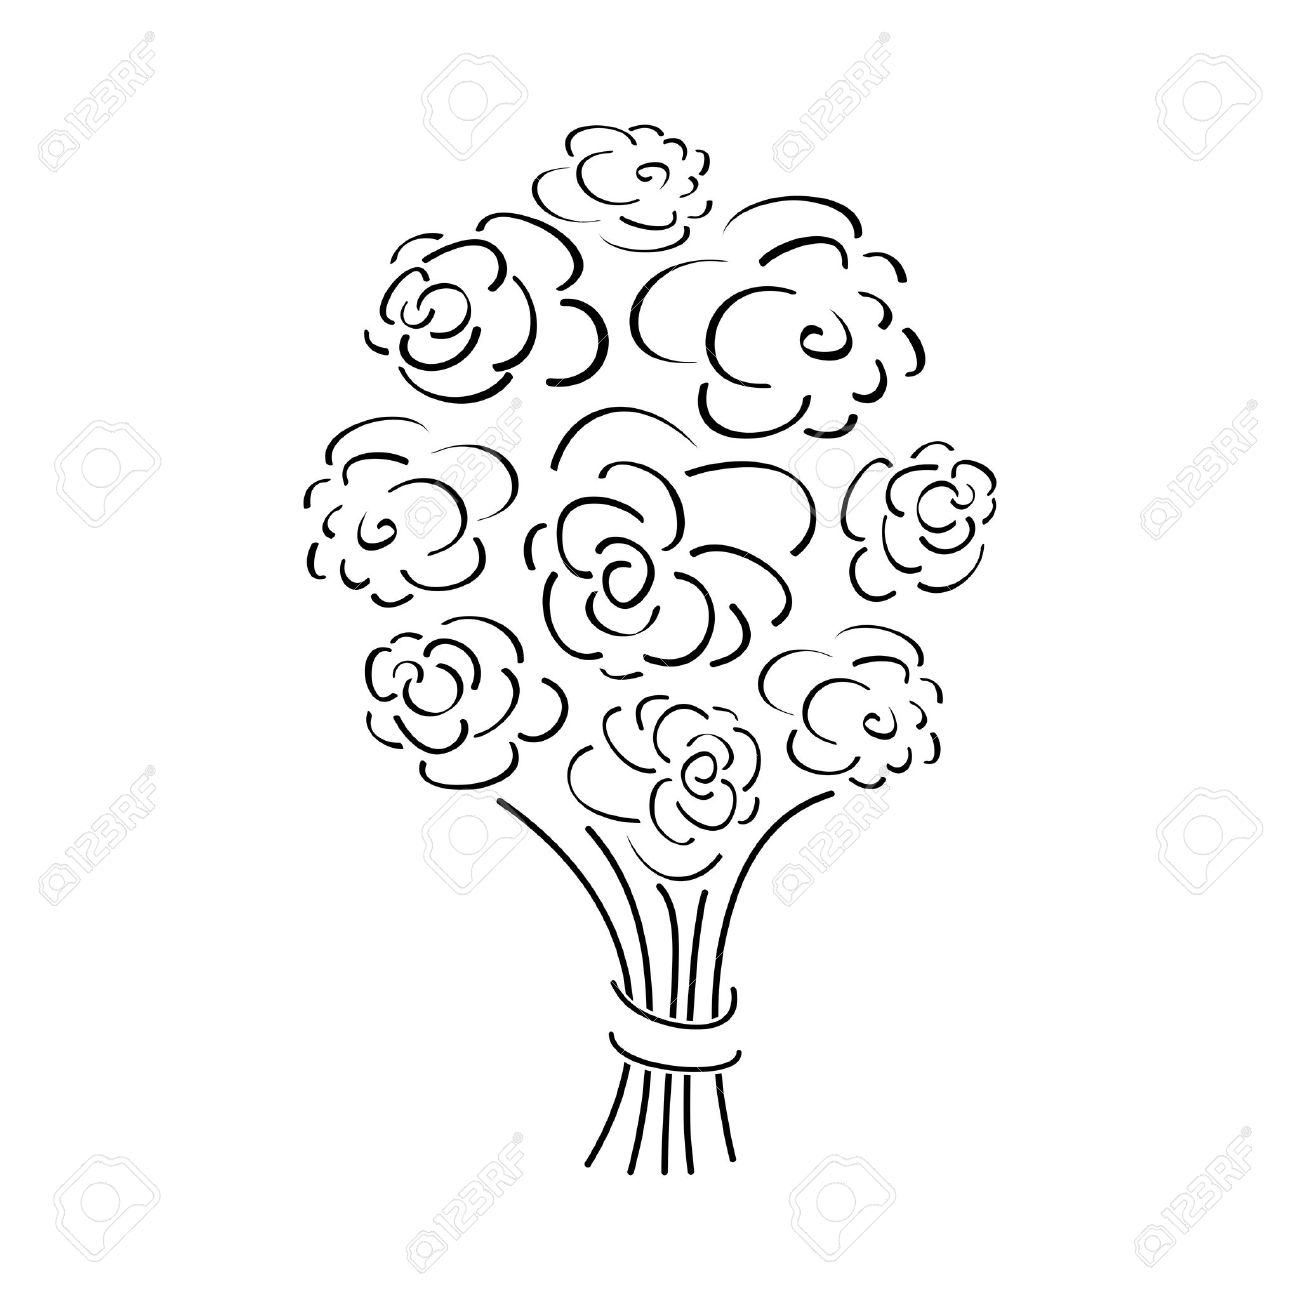 Outline Rose Bouquet Vector Illustration Royalty Free Cliparts